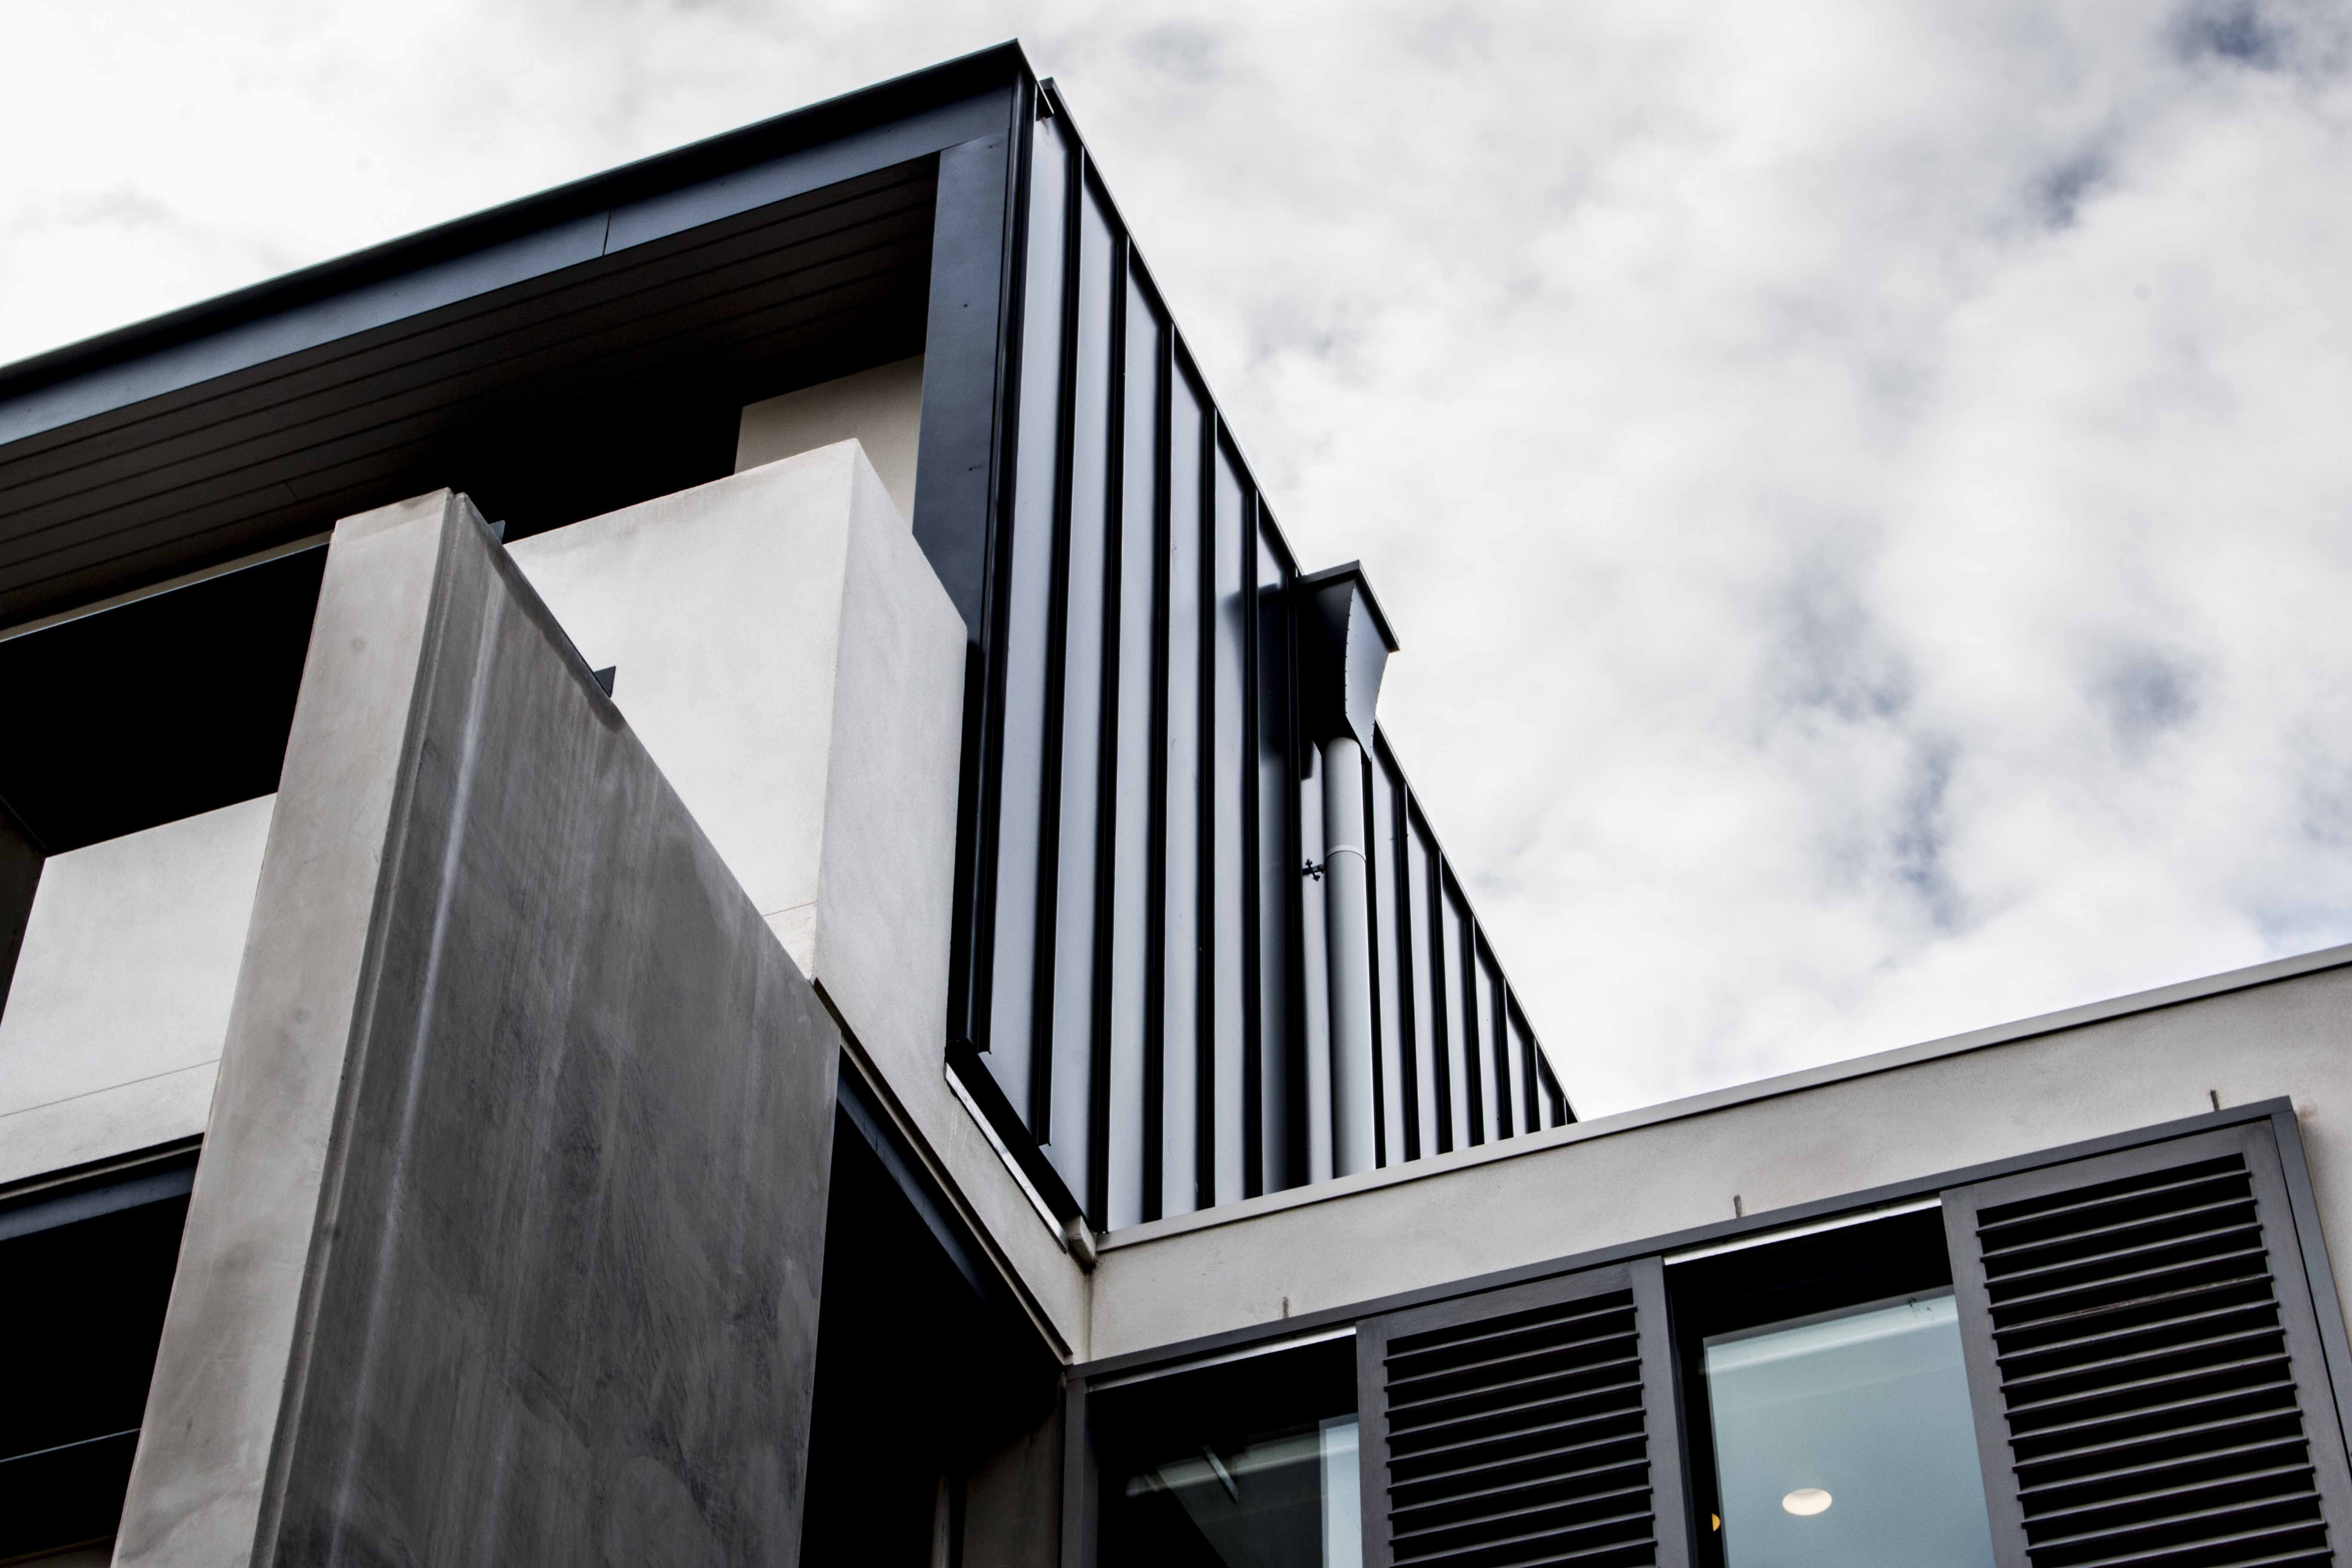 Brookville Road Apartments by Neometro features our Standing Seam cladding  system in Colorbond Steel s Woodland GreyBrookville Road Apartments by Neometro features our Standing Seam  . Architectural Metal Wall Cladding Systems. Home Design Ideas